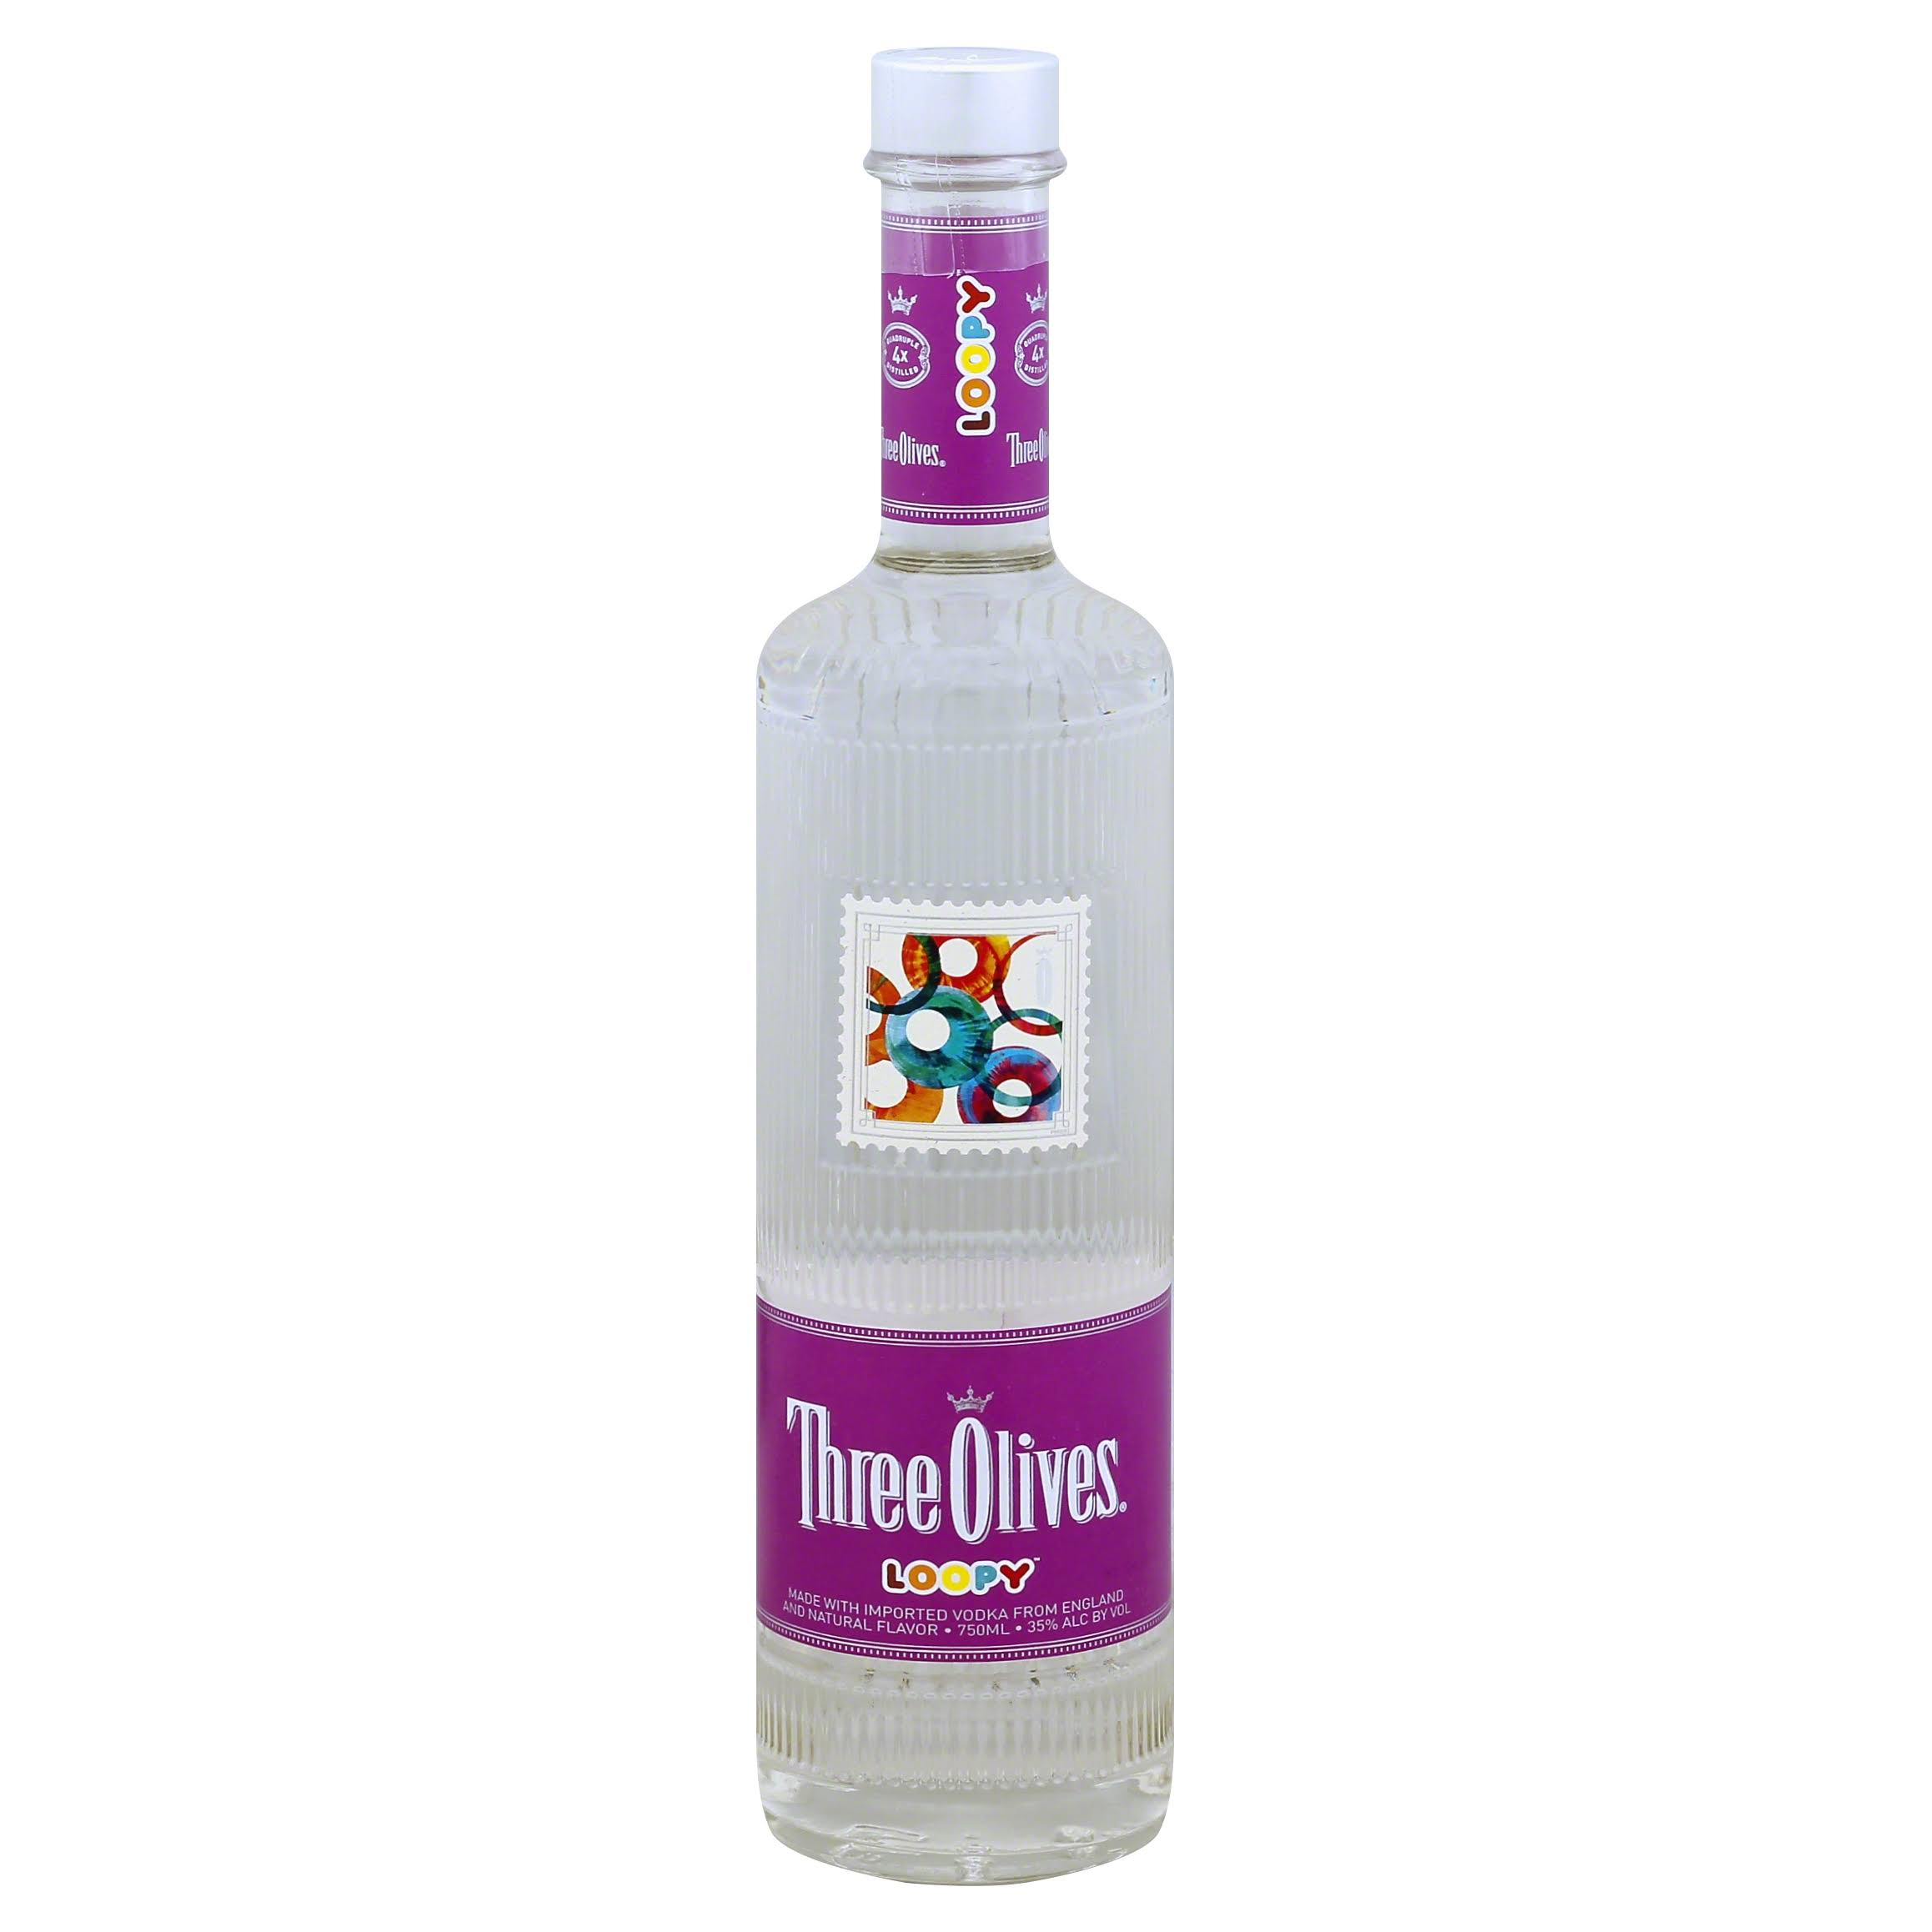 Three Olives Vodka - Loopy, 750 ml